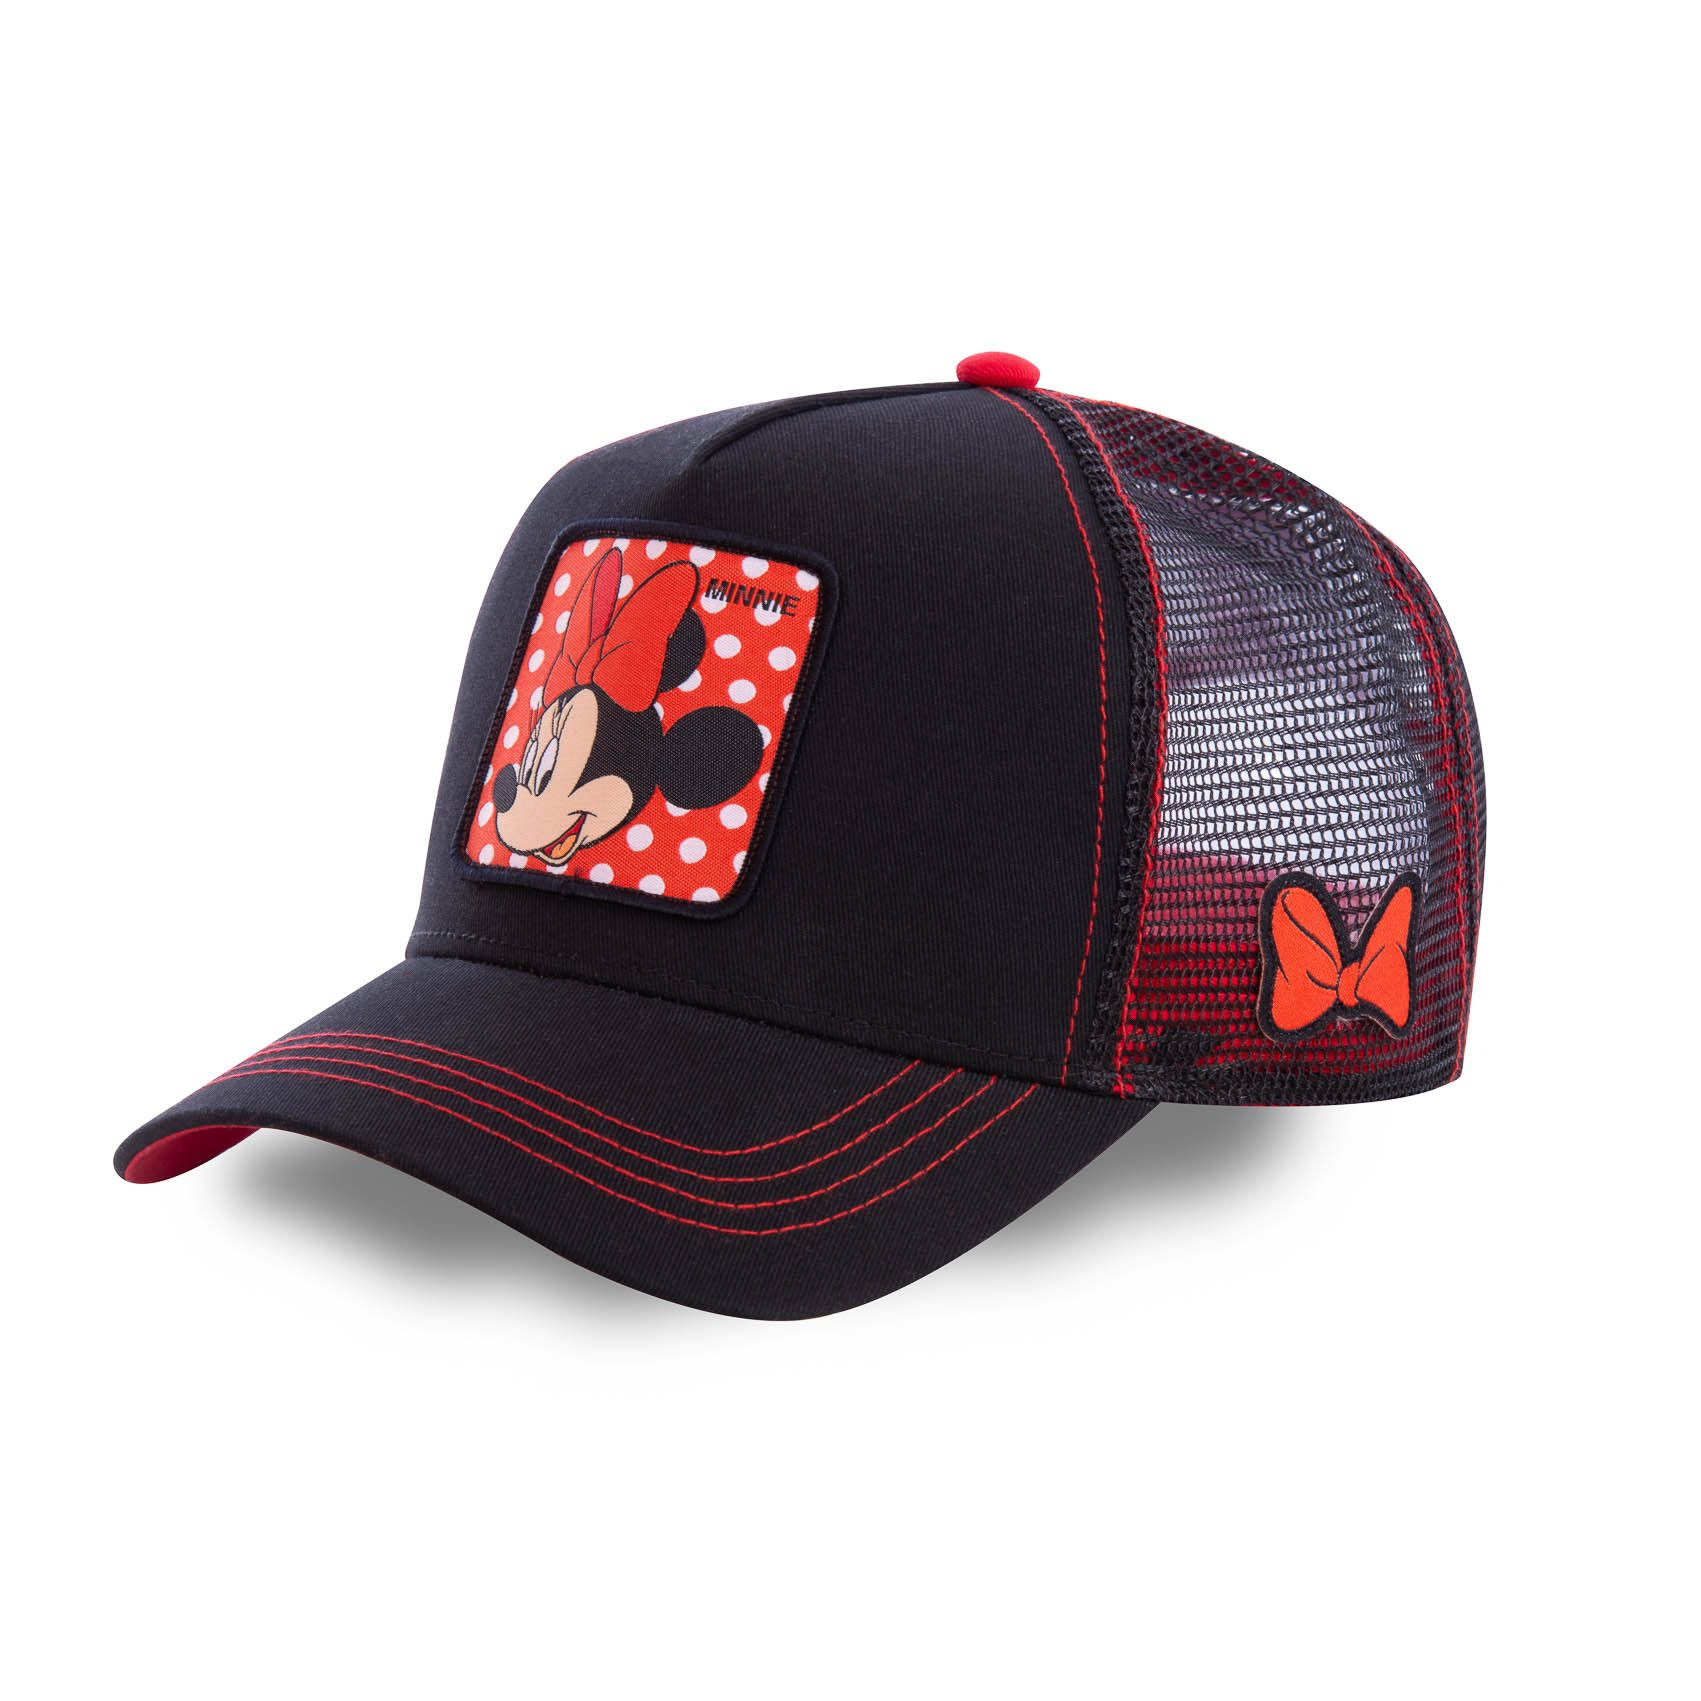 Casquette capslab disney minnie noir et rouge (photo)